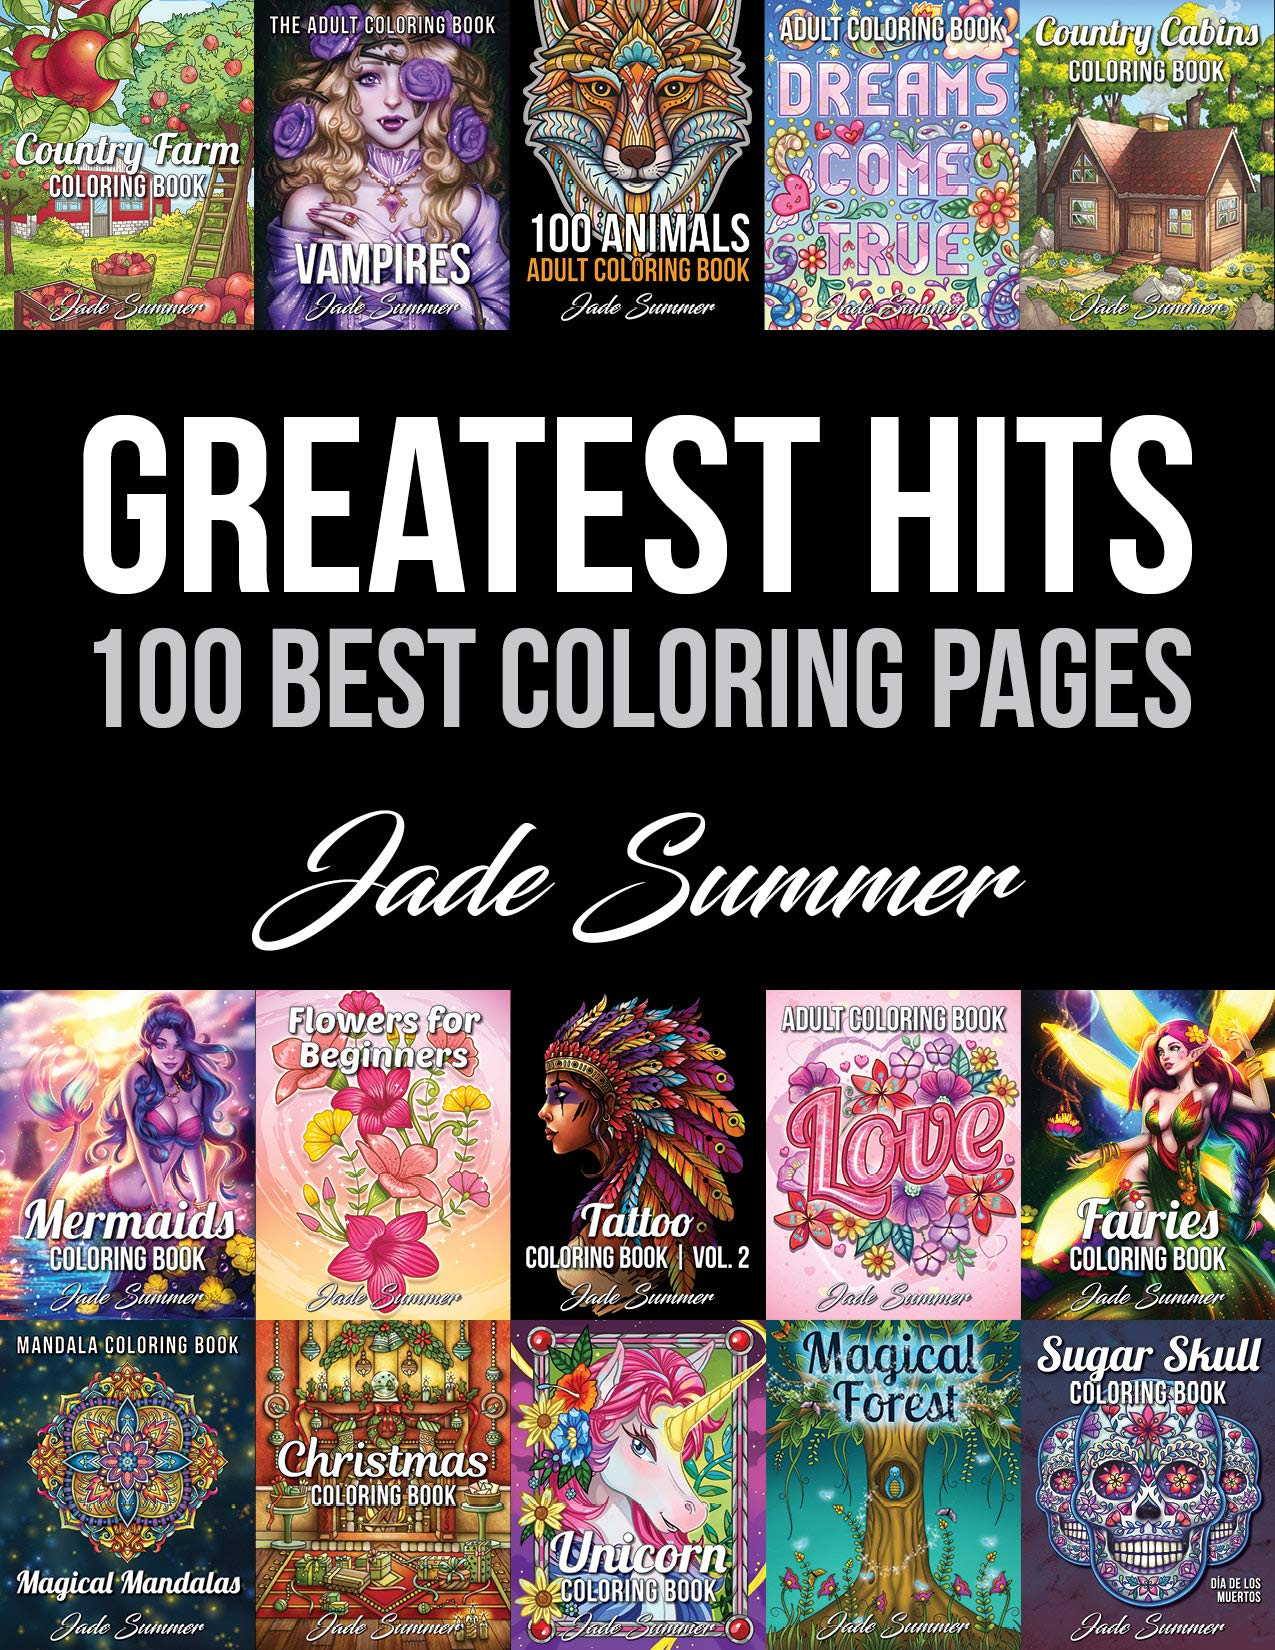 Amazon.com: Greatest Hits: An Adult Coloring Book with the 10